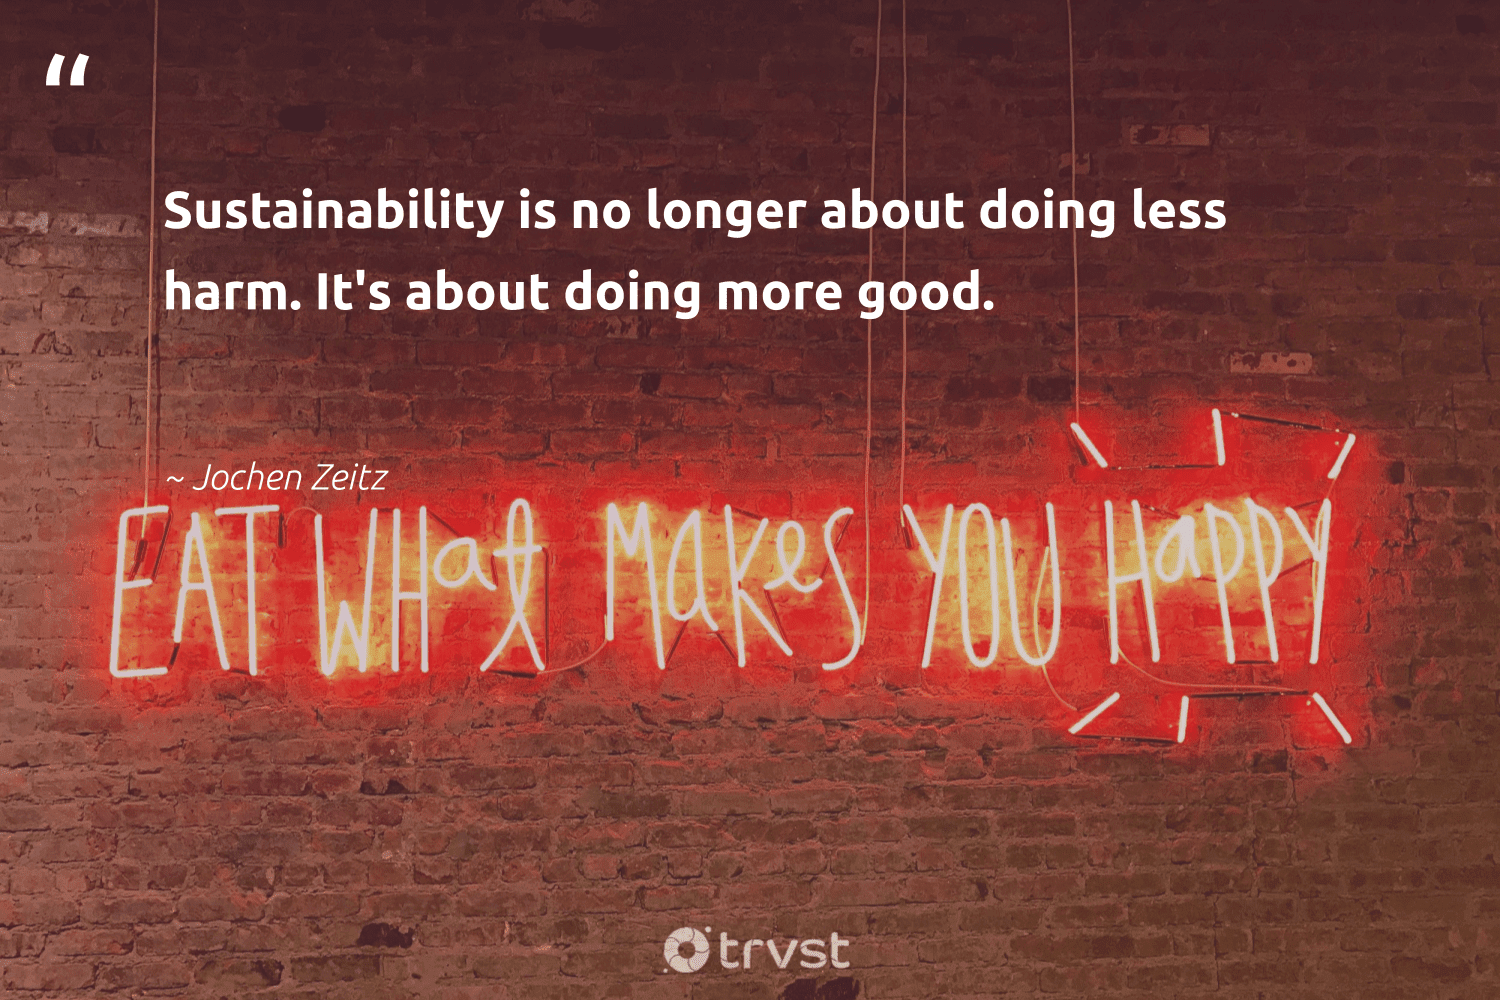 """""""Sustainability is no longer about doing less harm. It's about doing more good.""""  - Jochen Zeitz #trvst #quotes #sustainability #ecofriendly #bethechange #sustainable #socialchange #sustainableliving #gogreen #green #ecoconscious #greenliving"""